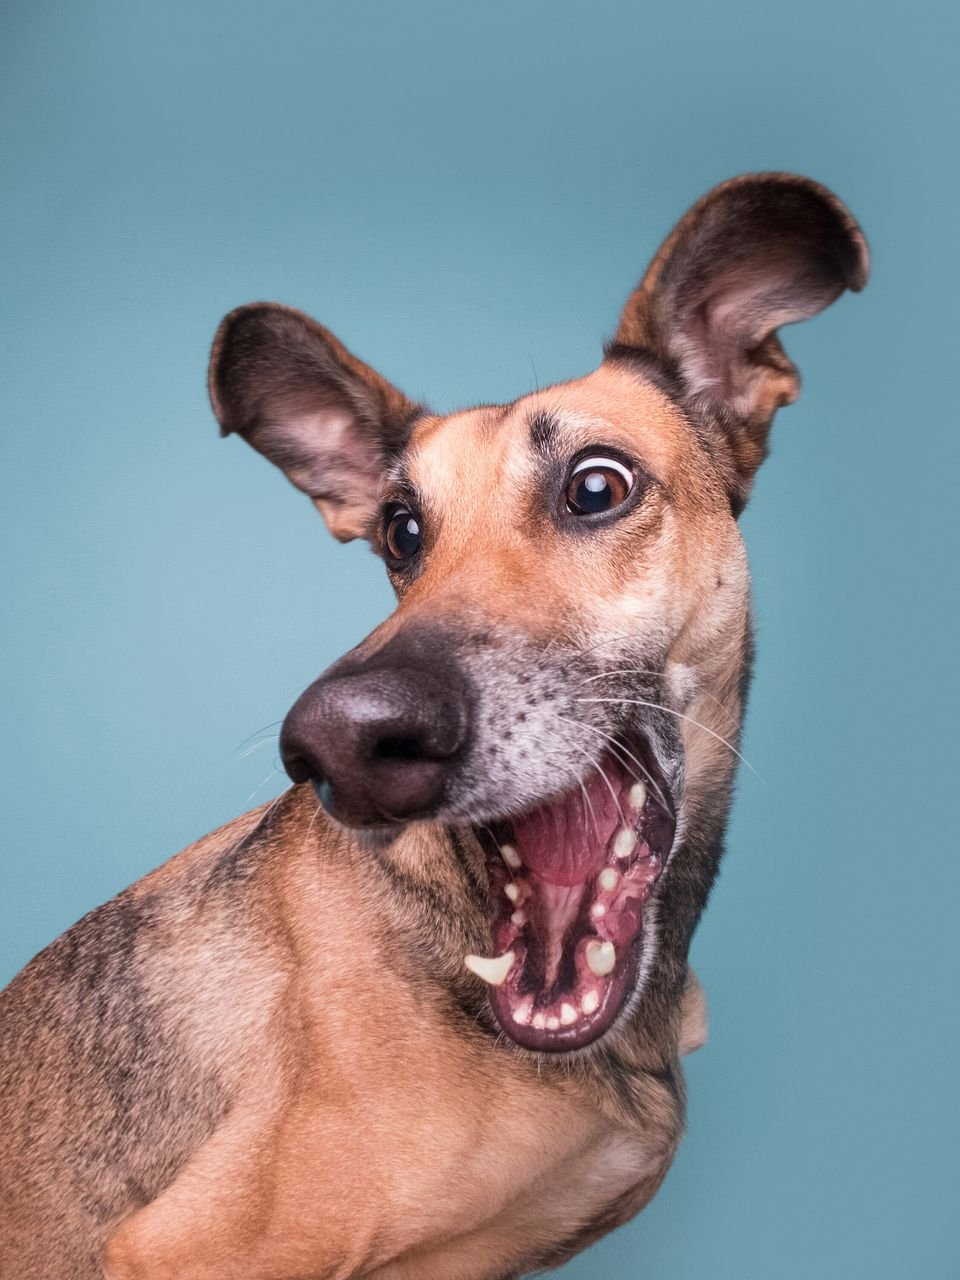 Mars Petcare Comedy Pet Photo Awards